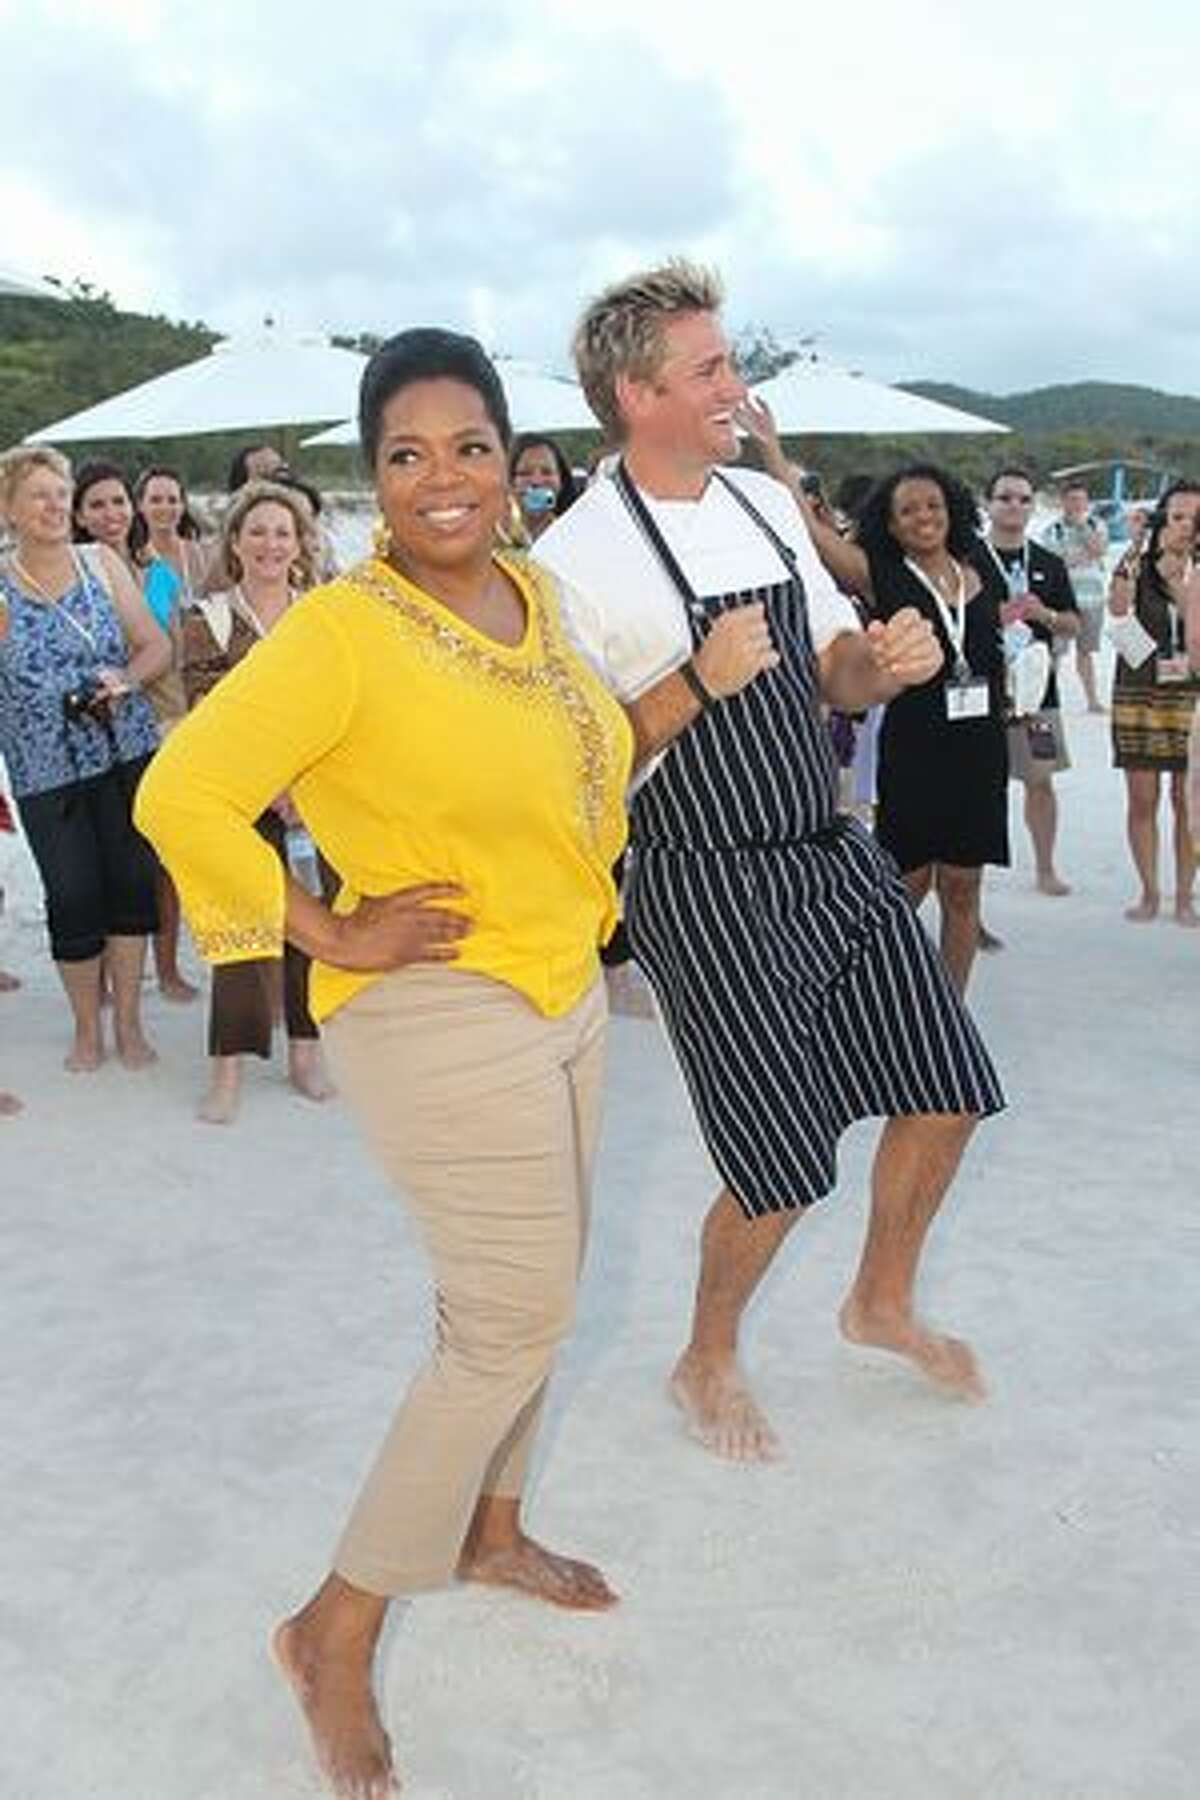 In this handout image provided by Harpo Productions Inc., Oprah Winfrey dances with Chef Curtis Stone on December 8, 2010 on Hamilton Island, Australia. Oprah Winfrey is in Australia with 302 audience members from the US, Canada and Jamaica and will tape episodes of the 25th and final season of 'The Oprah Winfrey Show' from the Sydney Opera house next week. The shows will air in the US and Australia in January 2011.